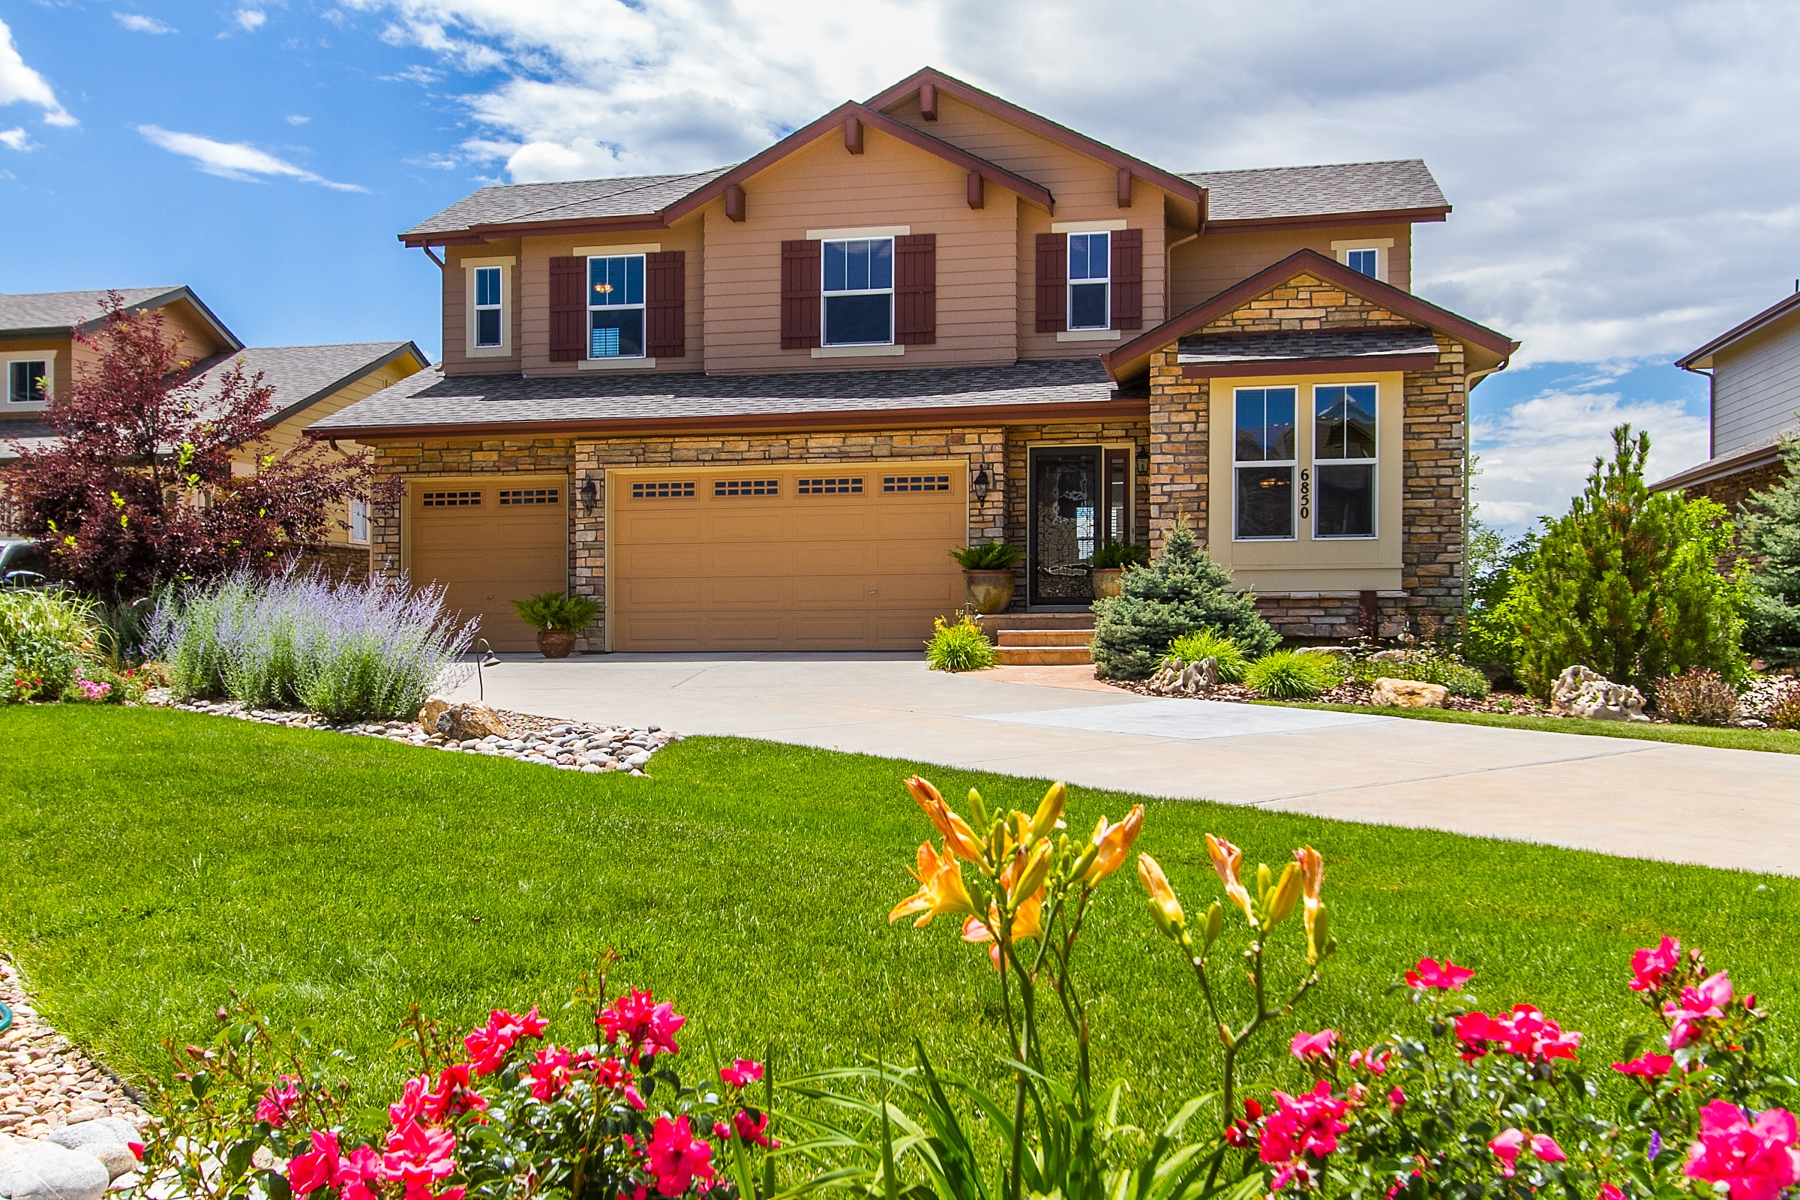 Single Family Home for Sale at Gorgeous, Immaculate Maintained Home 6850 South Harvest Court Aurora, Colorado 80016 United States